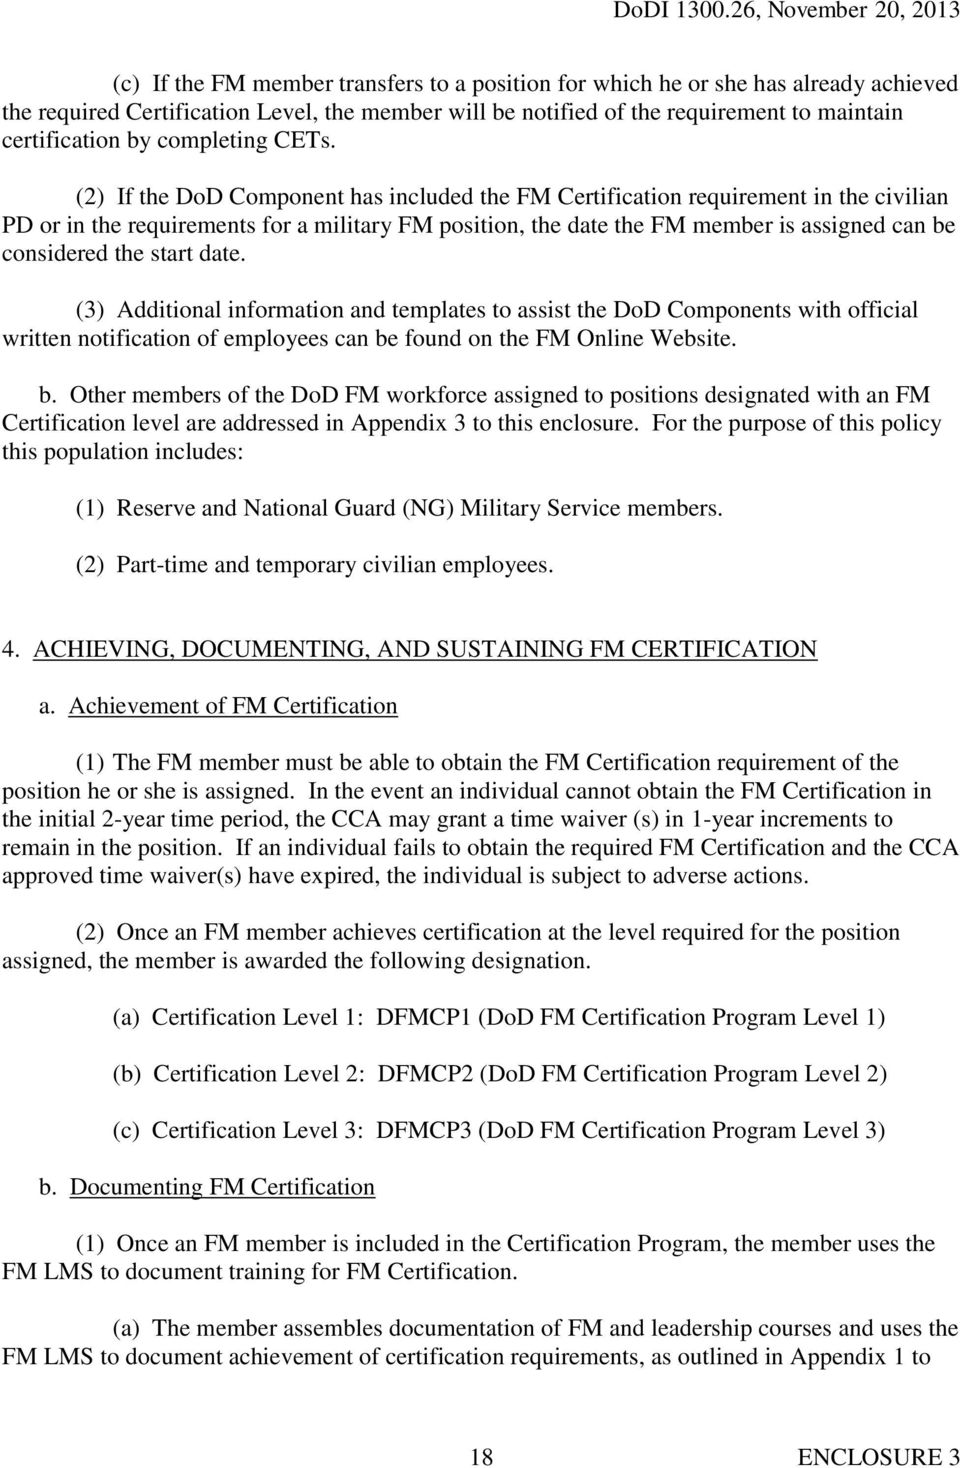 (2) If the DoD Component has included the FM Certification requirement in the civilian PD or in the requirements for a military FM position, the date the FM member is assigned can be considered the